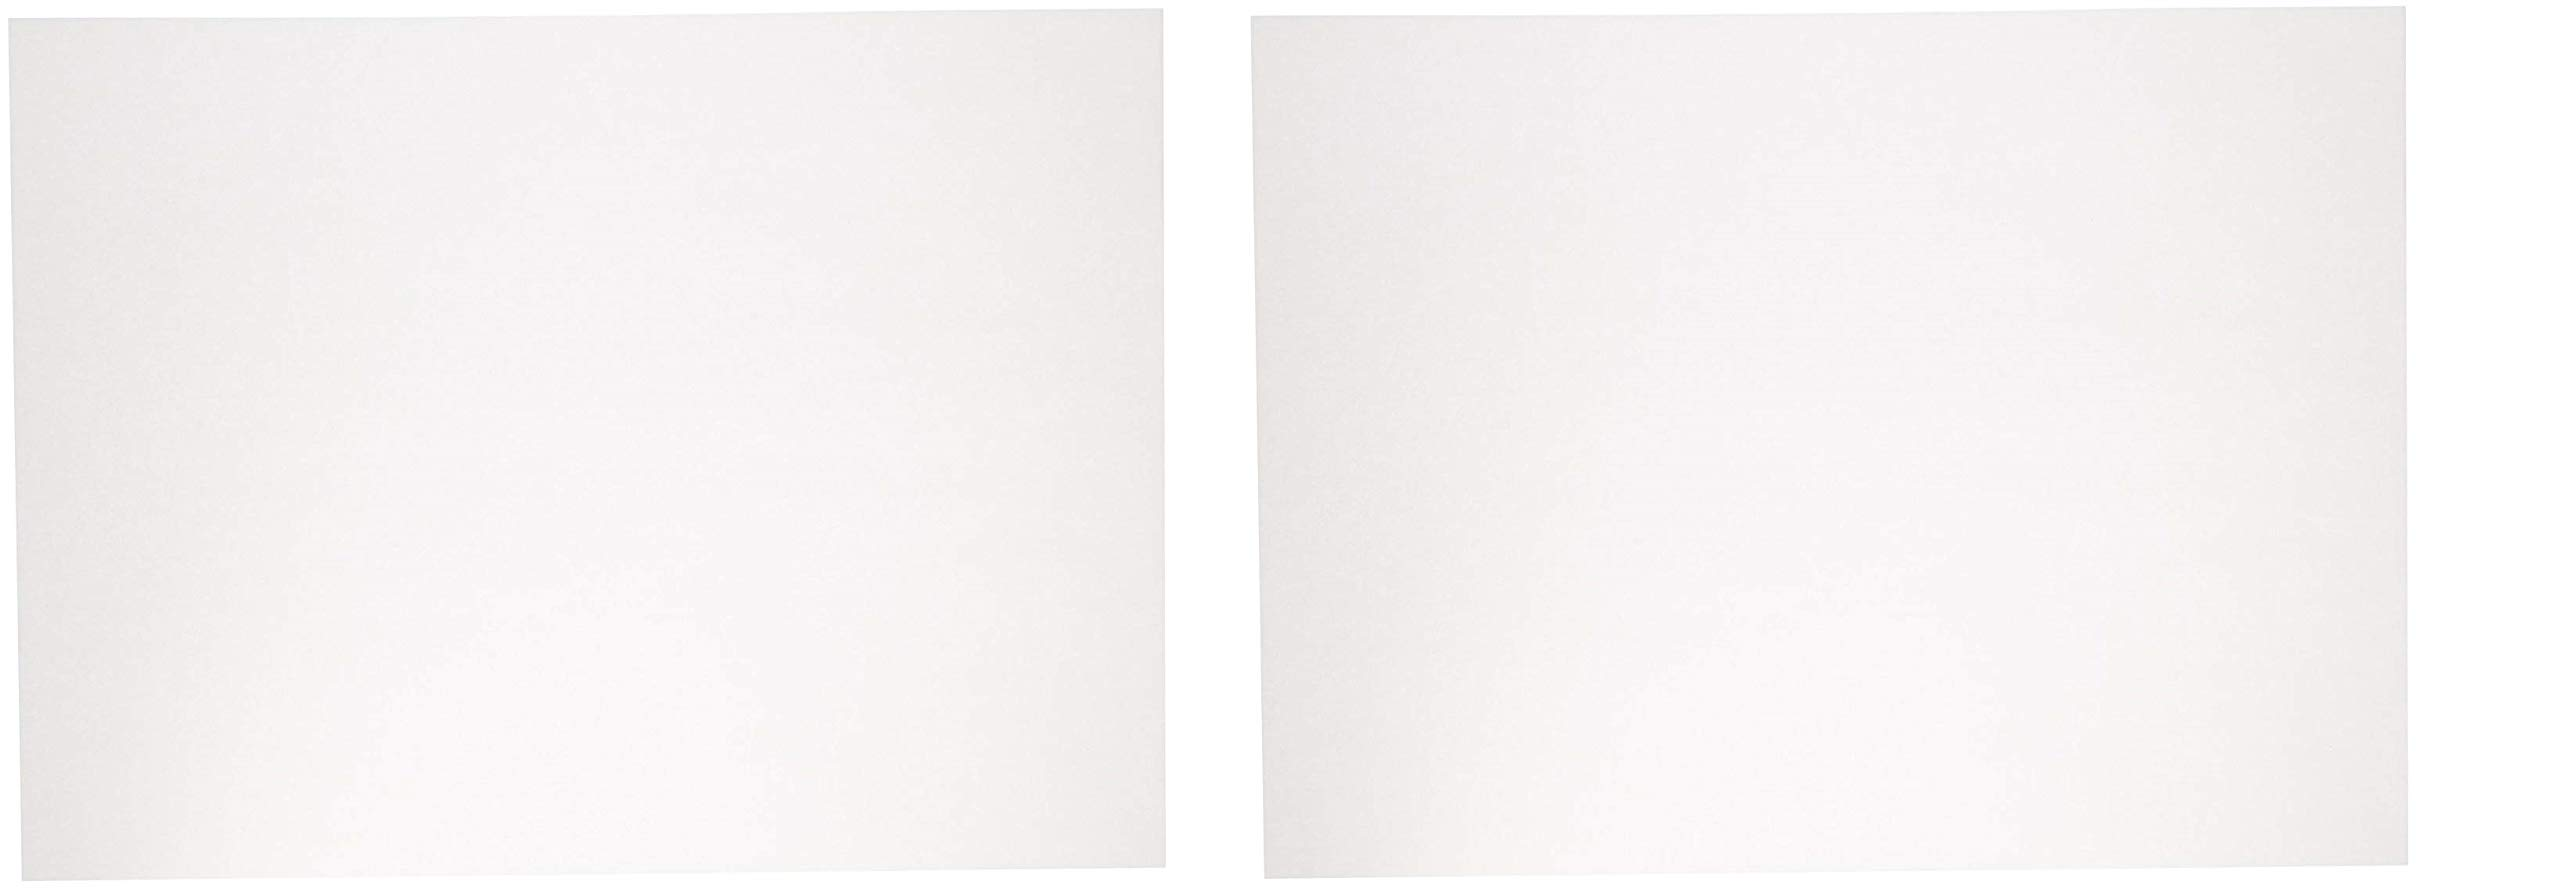 Sax Sulphite Drawing Paper, 60 lb, 18 x 24 Inches, Extra-White, Pack of 500 (2 X Pack of 500)